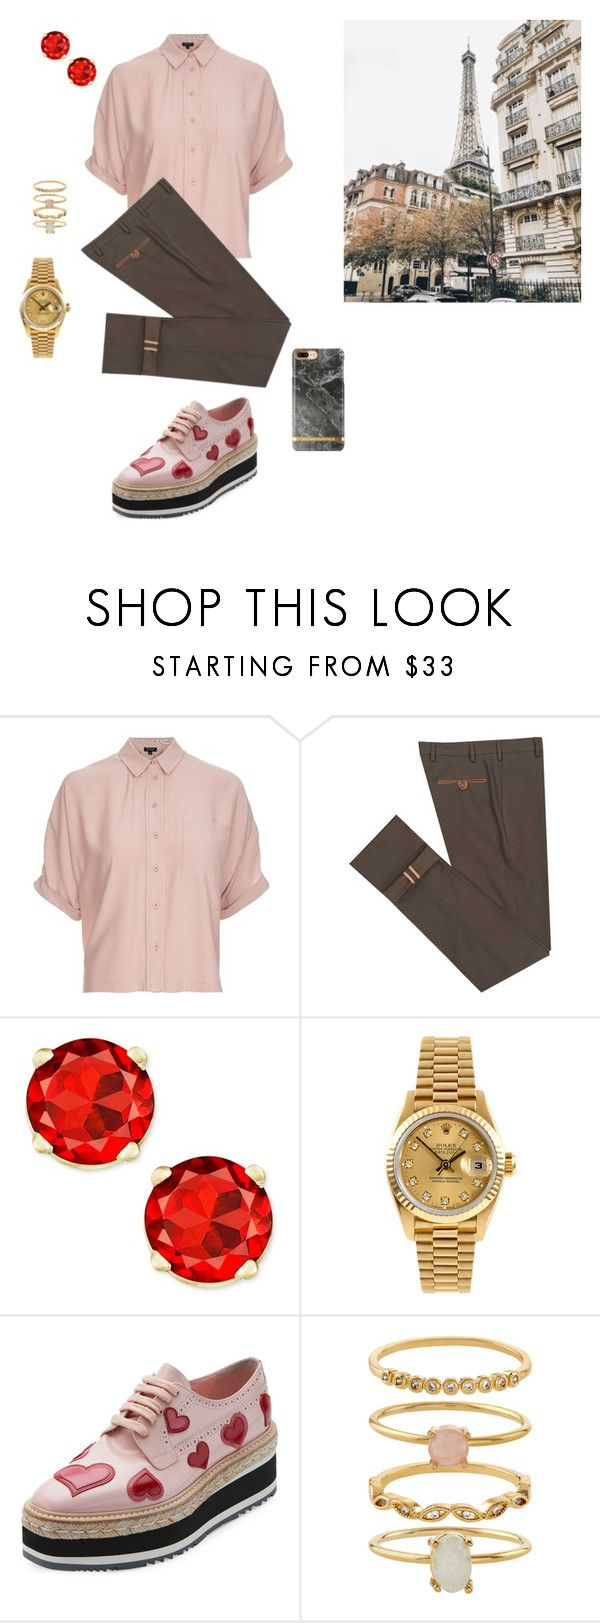 """Best Love"" by williamsonmia on Polyvore featuring Topshop, Diverso, Rolex, Prada and Accessorize"